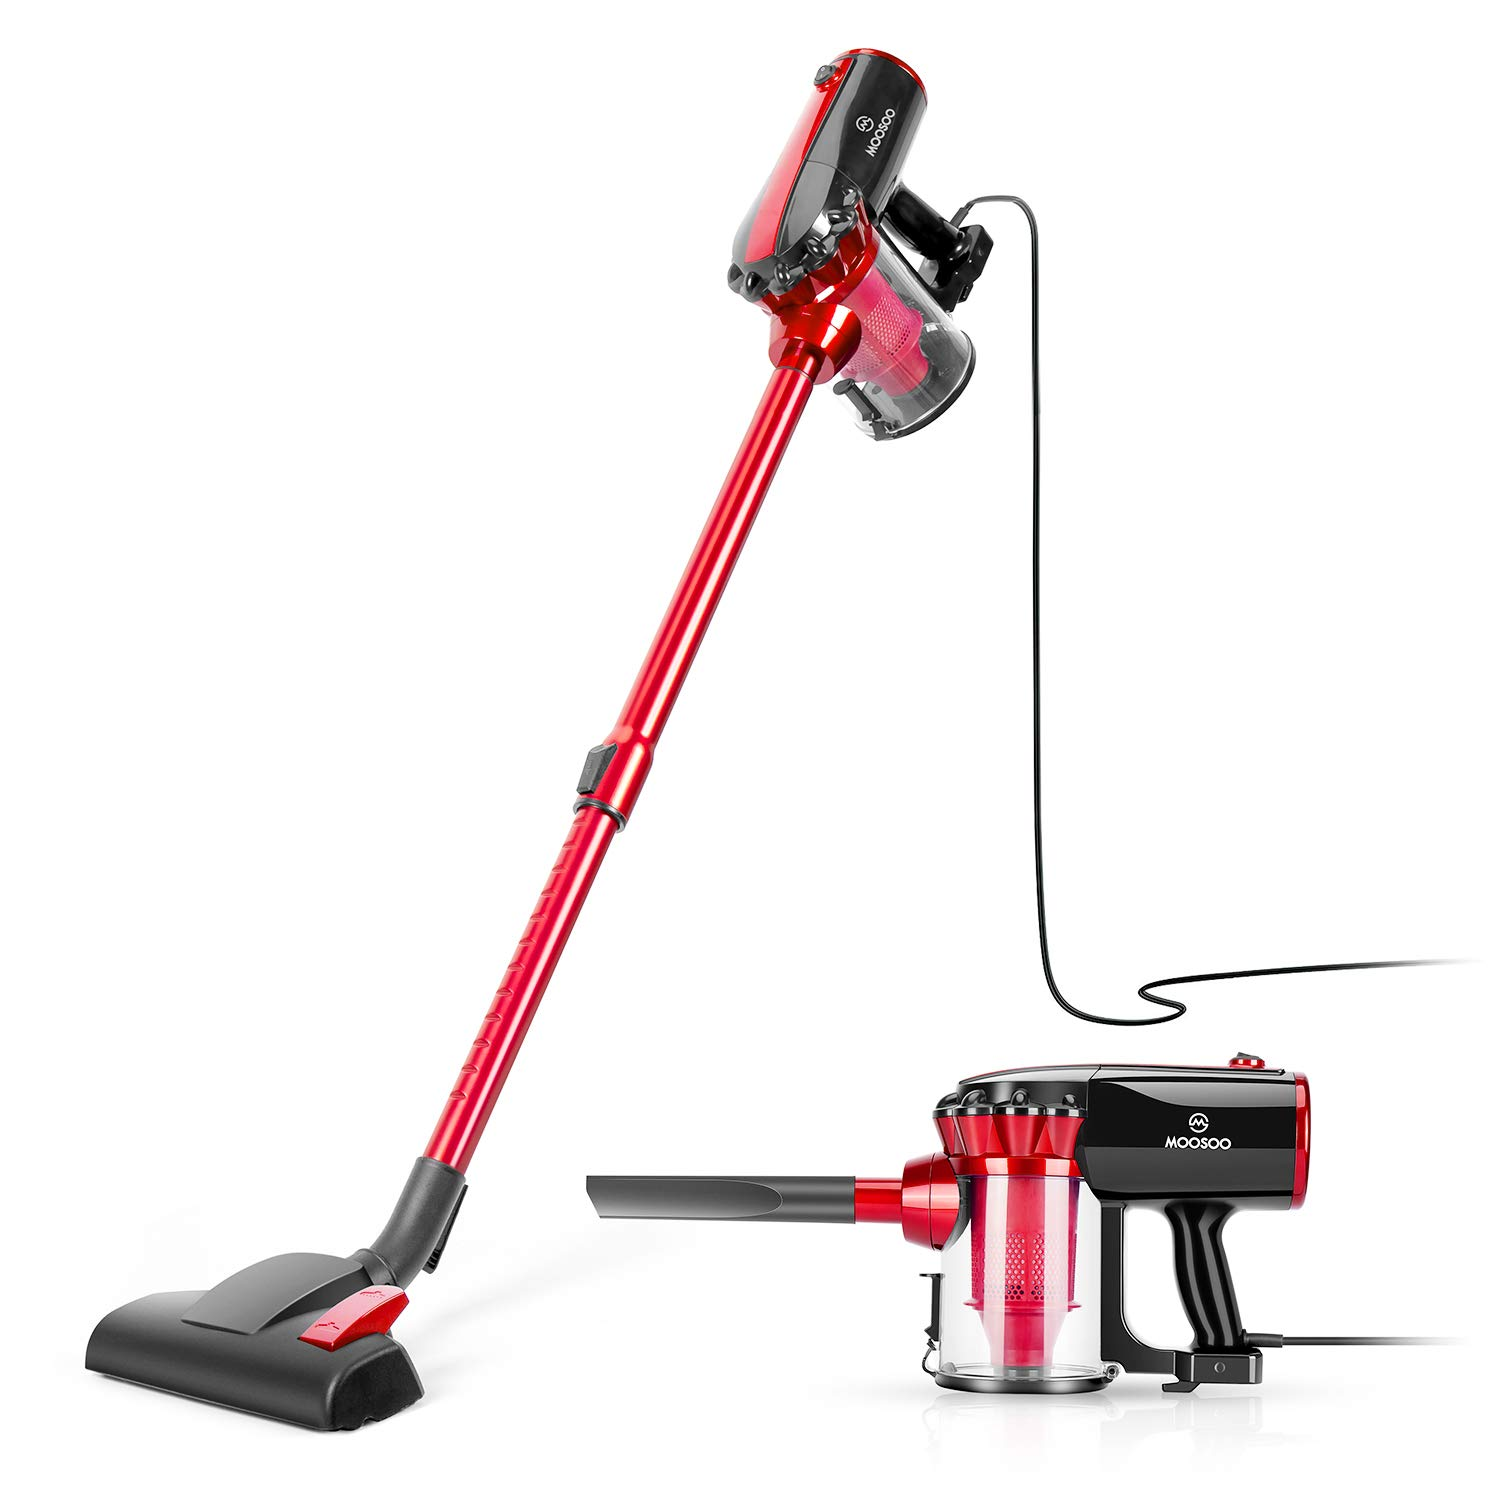 Top 10 Best Cheap Vacuums